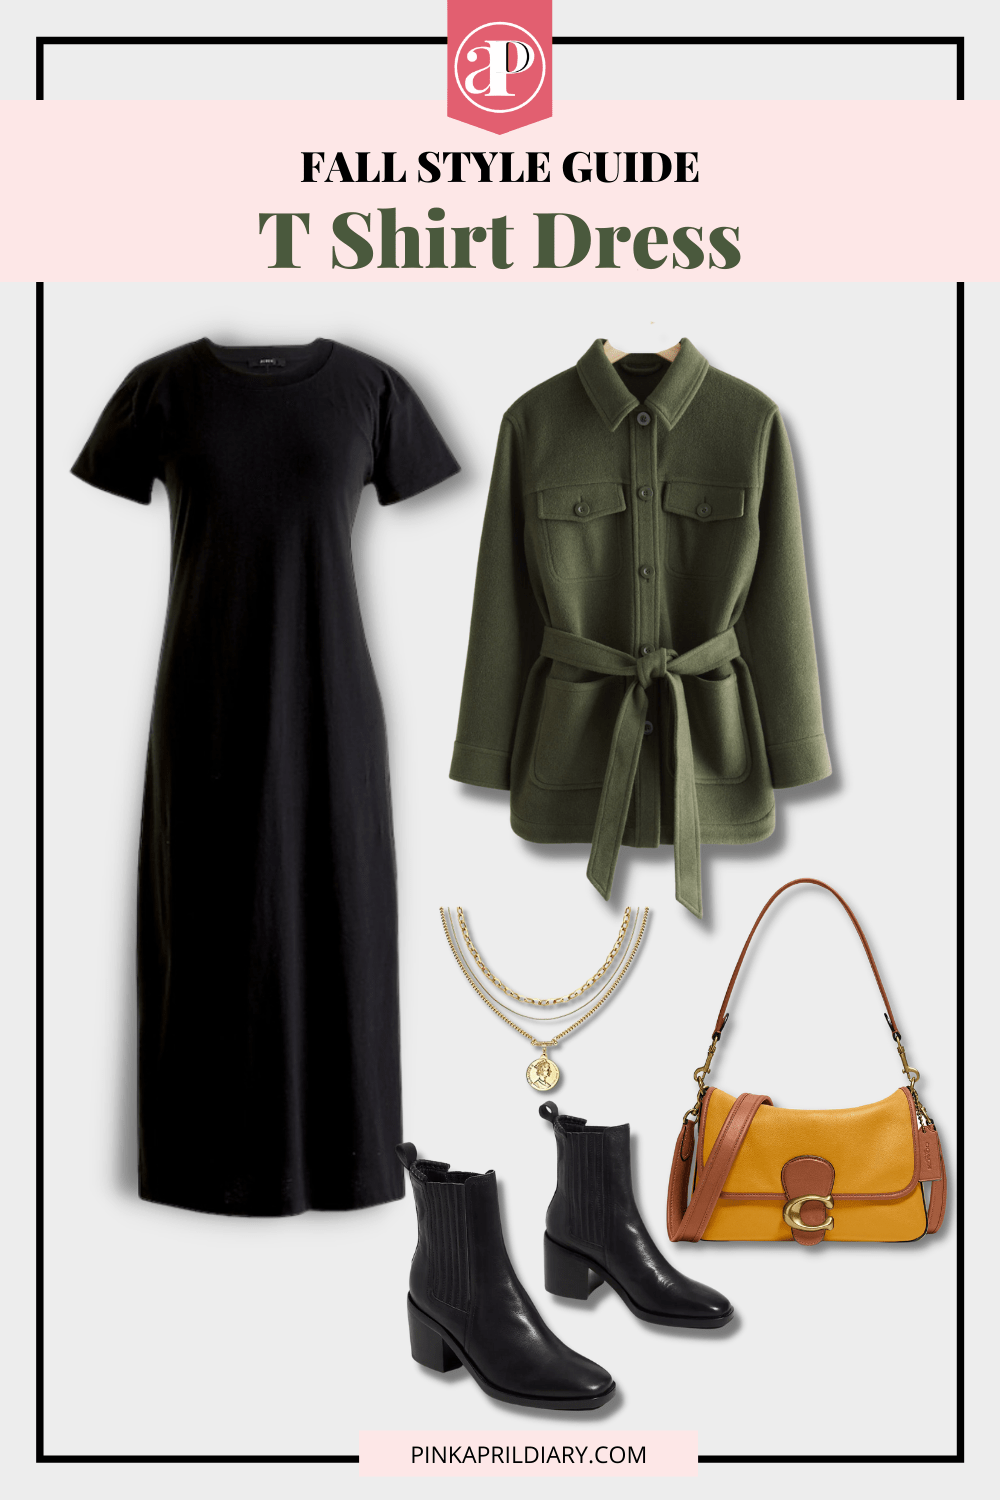 Fall Styling for a T Shirt Dress - outfit 3